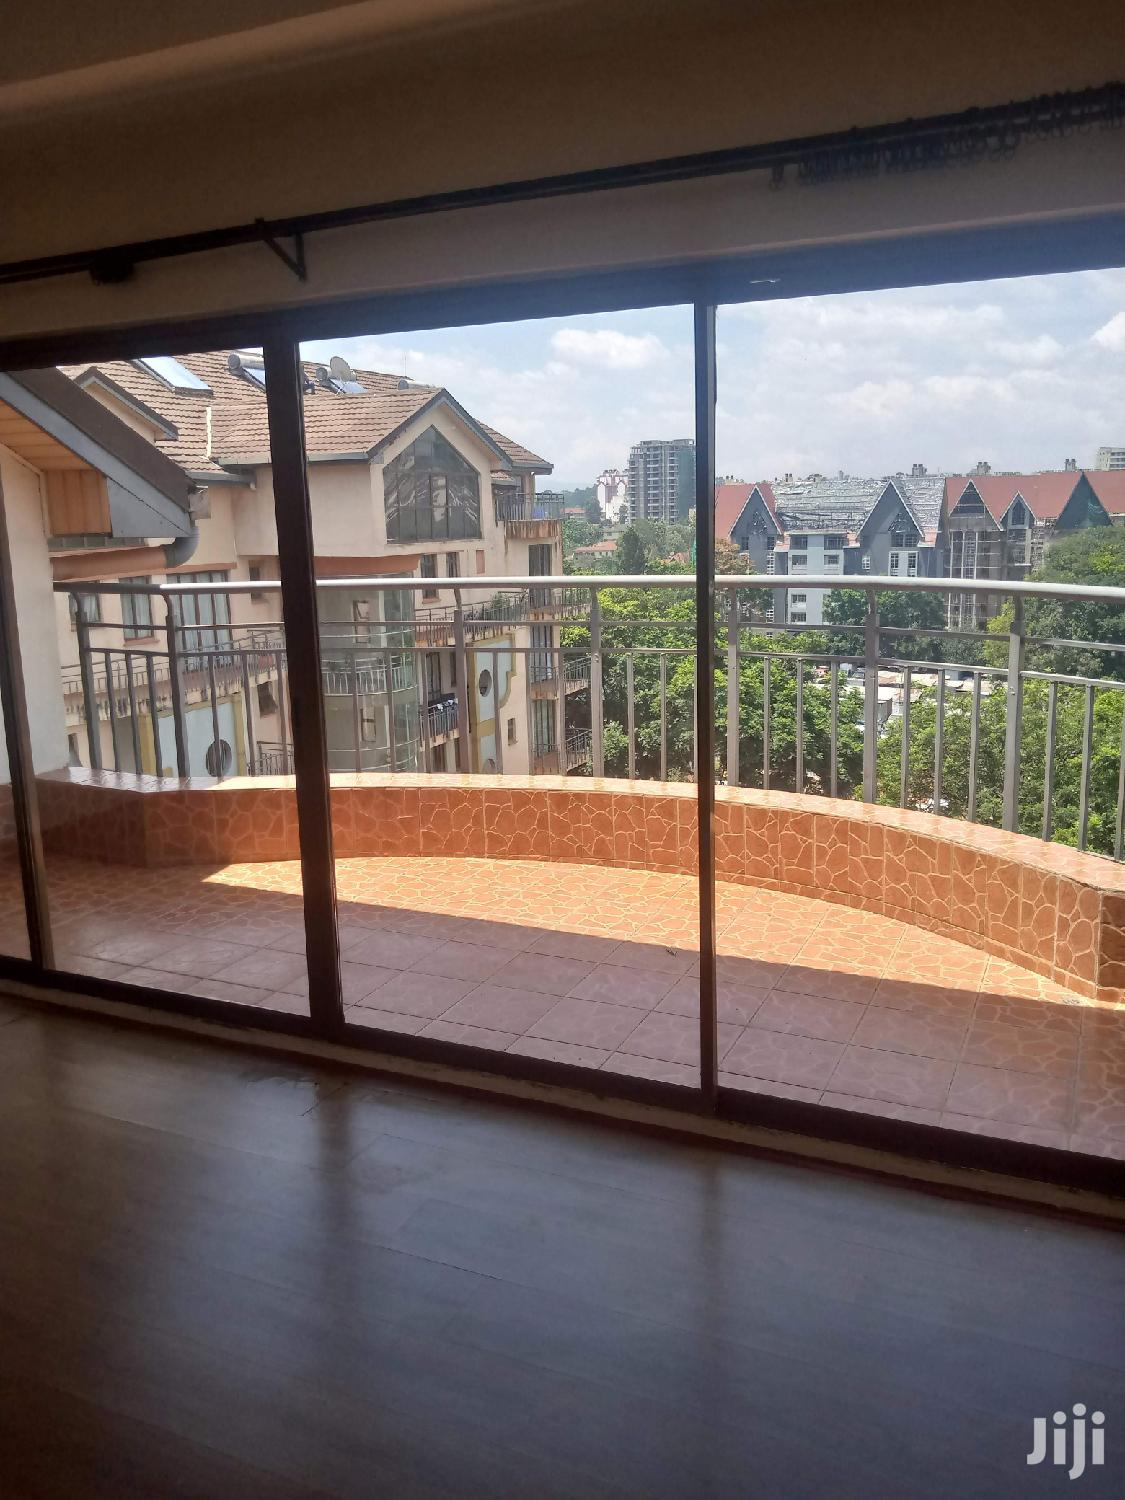 Archive: 4 Bedroom Duplex House In Kilimani For Rent.